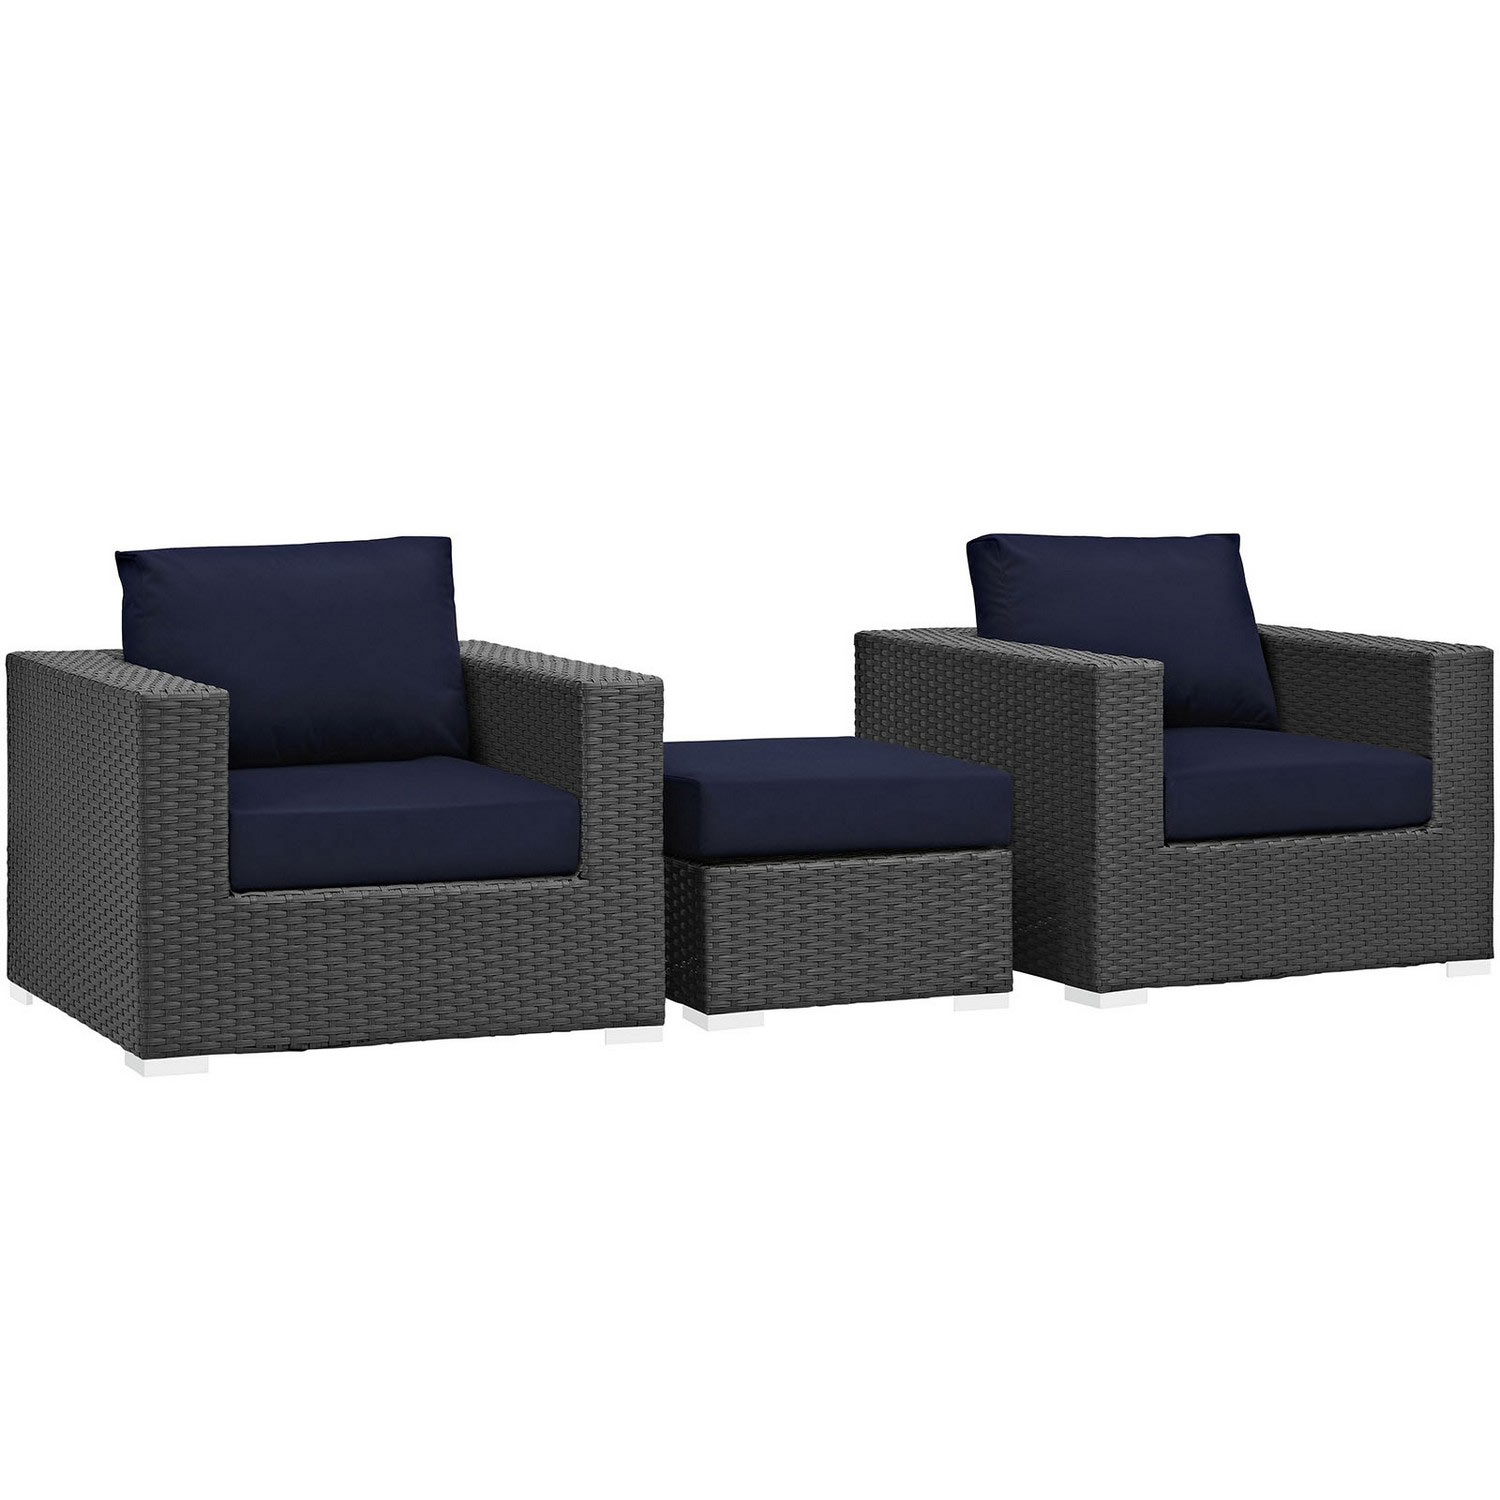 Modway Sojourn 3 Piece Outdoor Patio Sunbrella Sectional Set - Canvas Navy